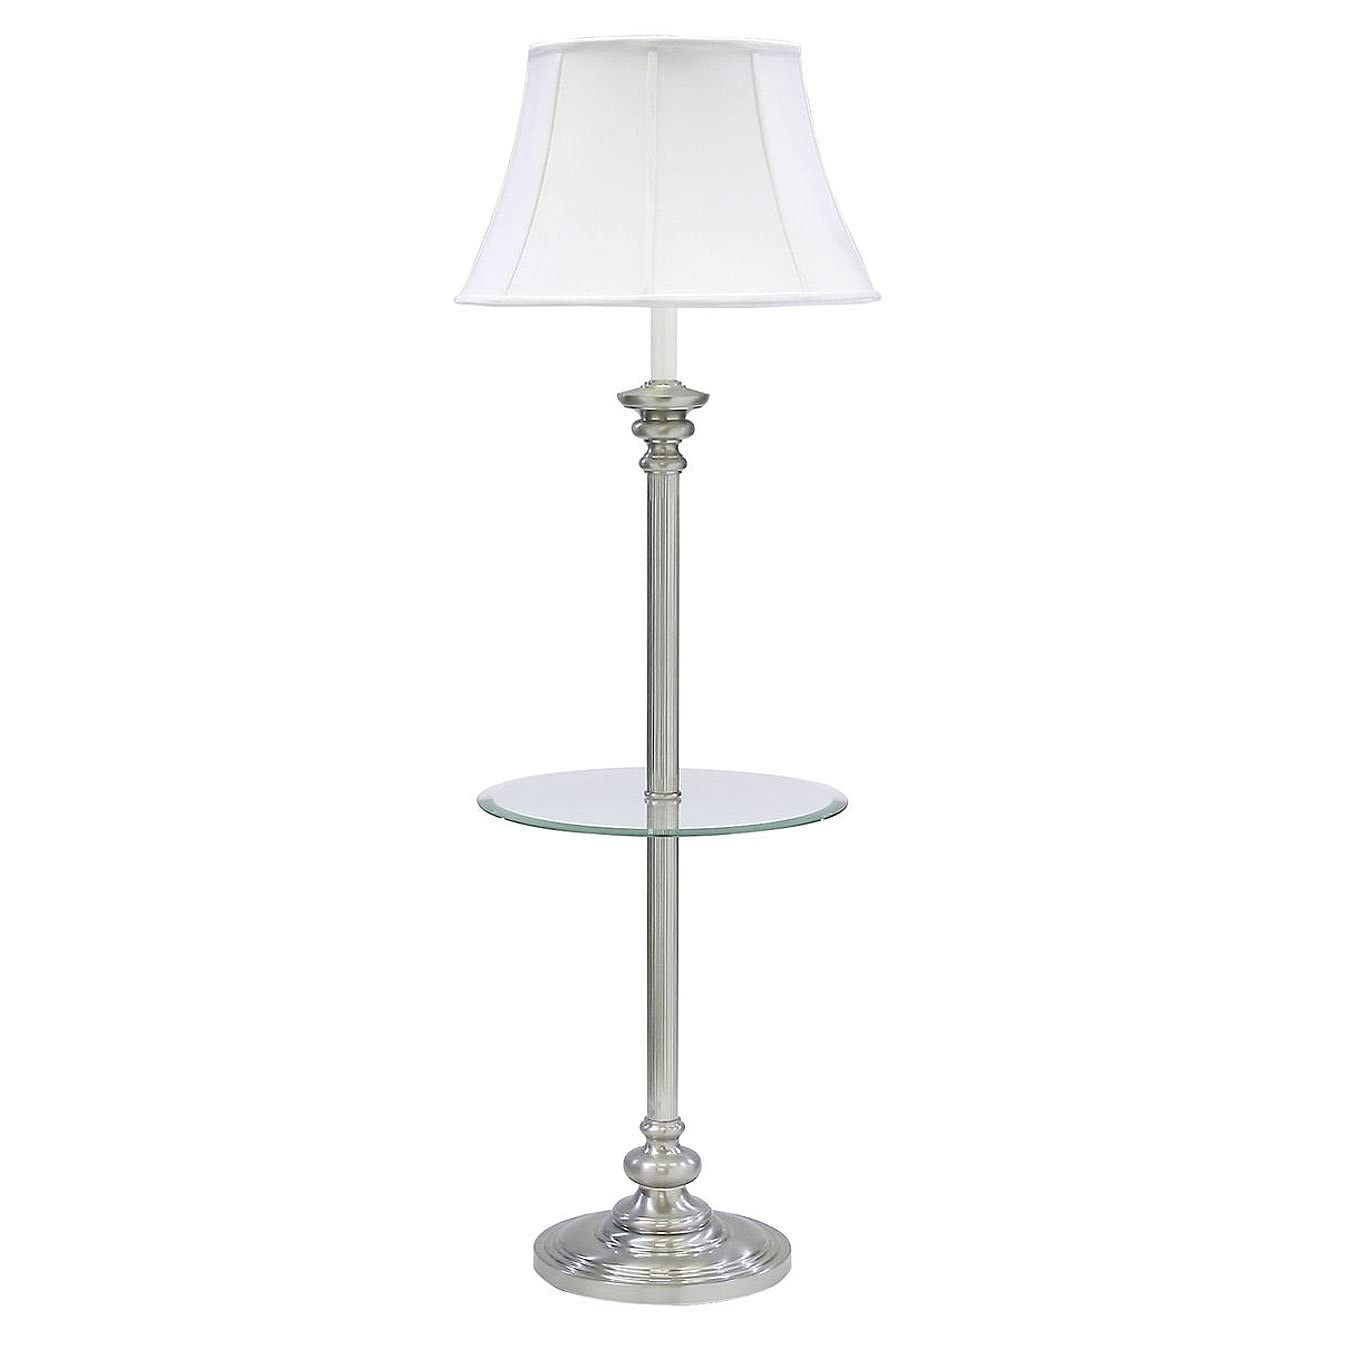 floor lamp with table attached. Black Bedroom Furniture Sets. Home Design Ideas